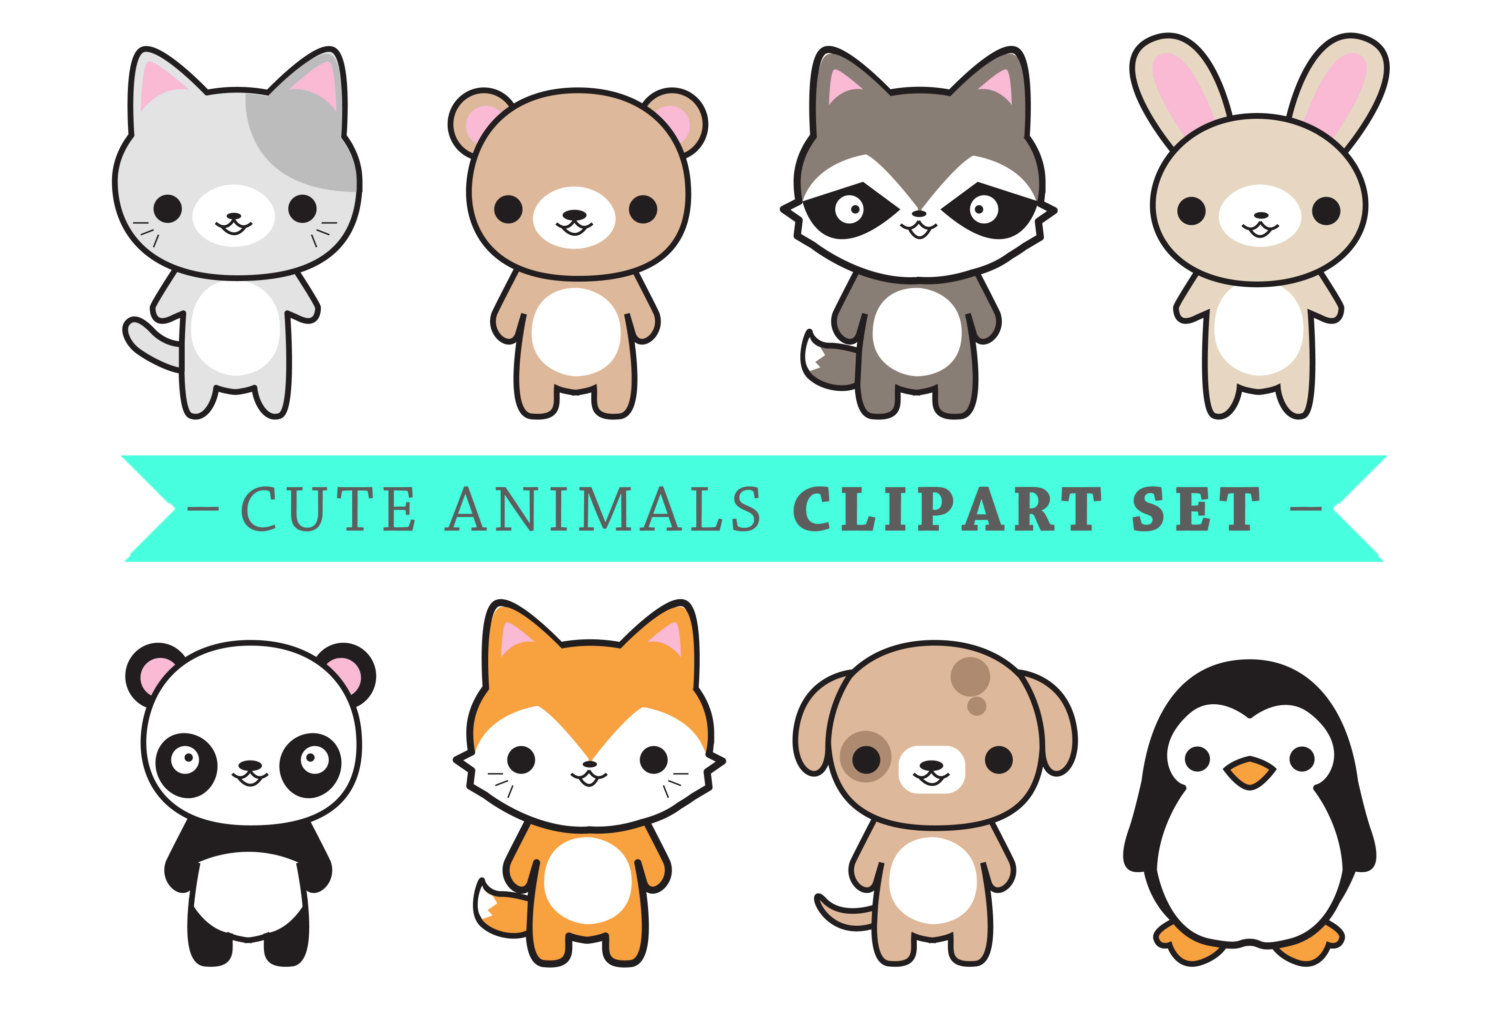 KITTENS clipart kawaii cat Instant Kawaii  Animals Cute